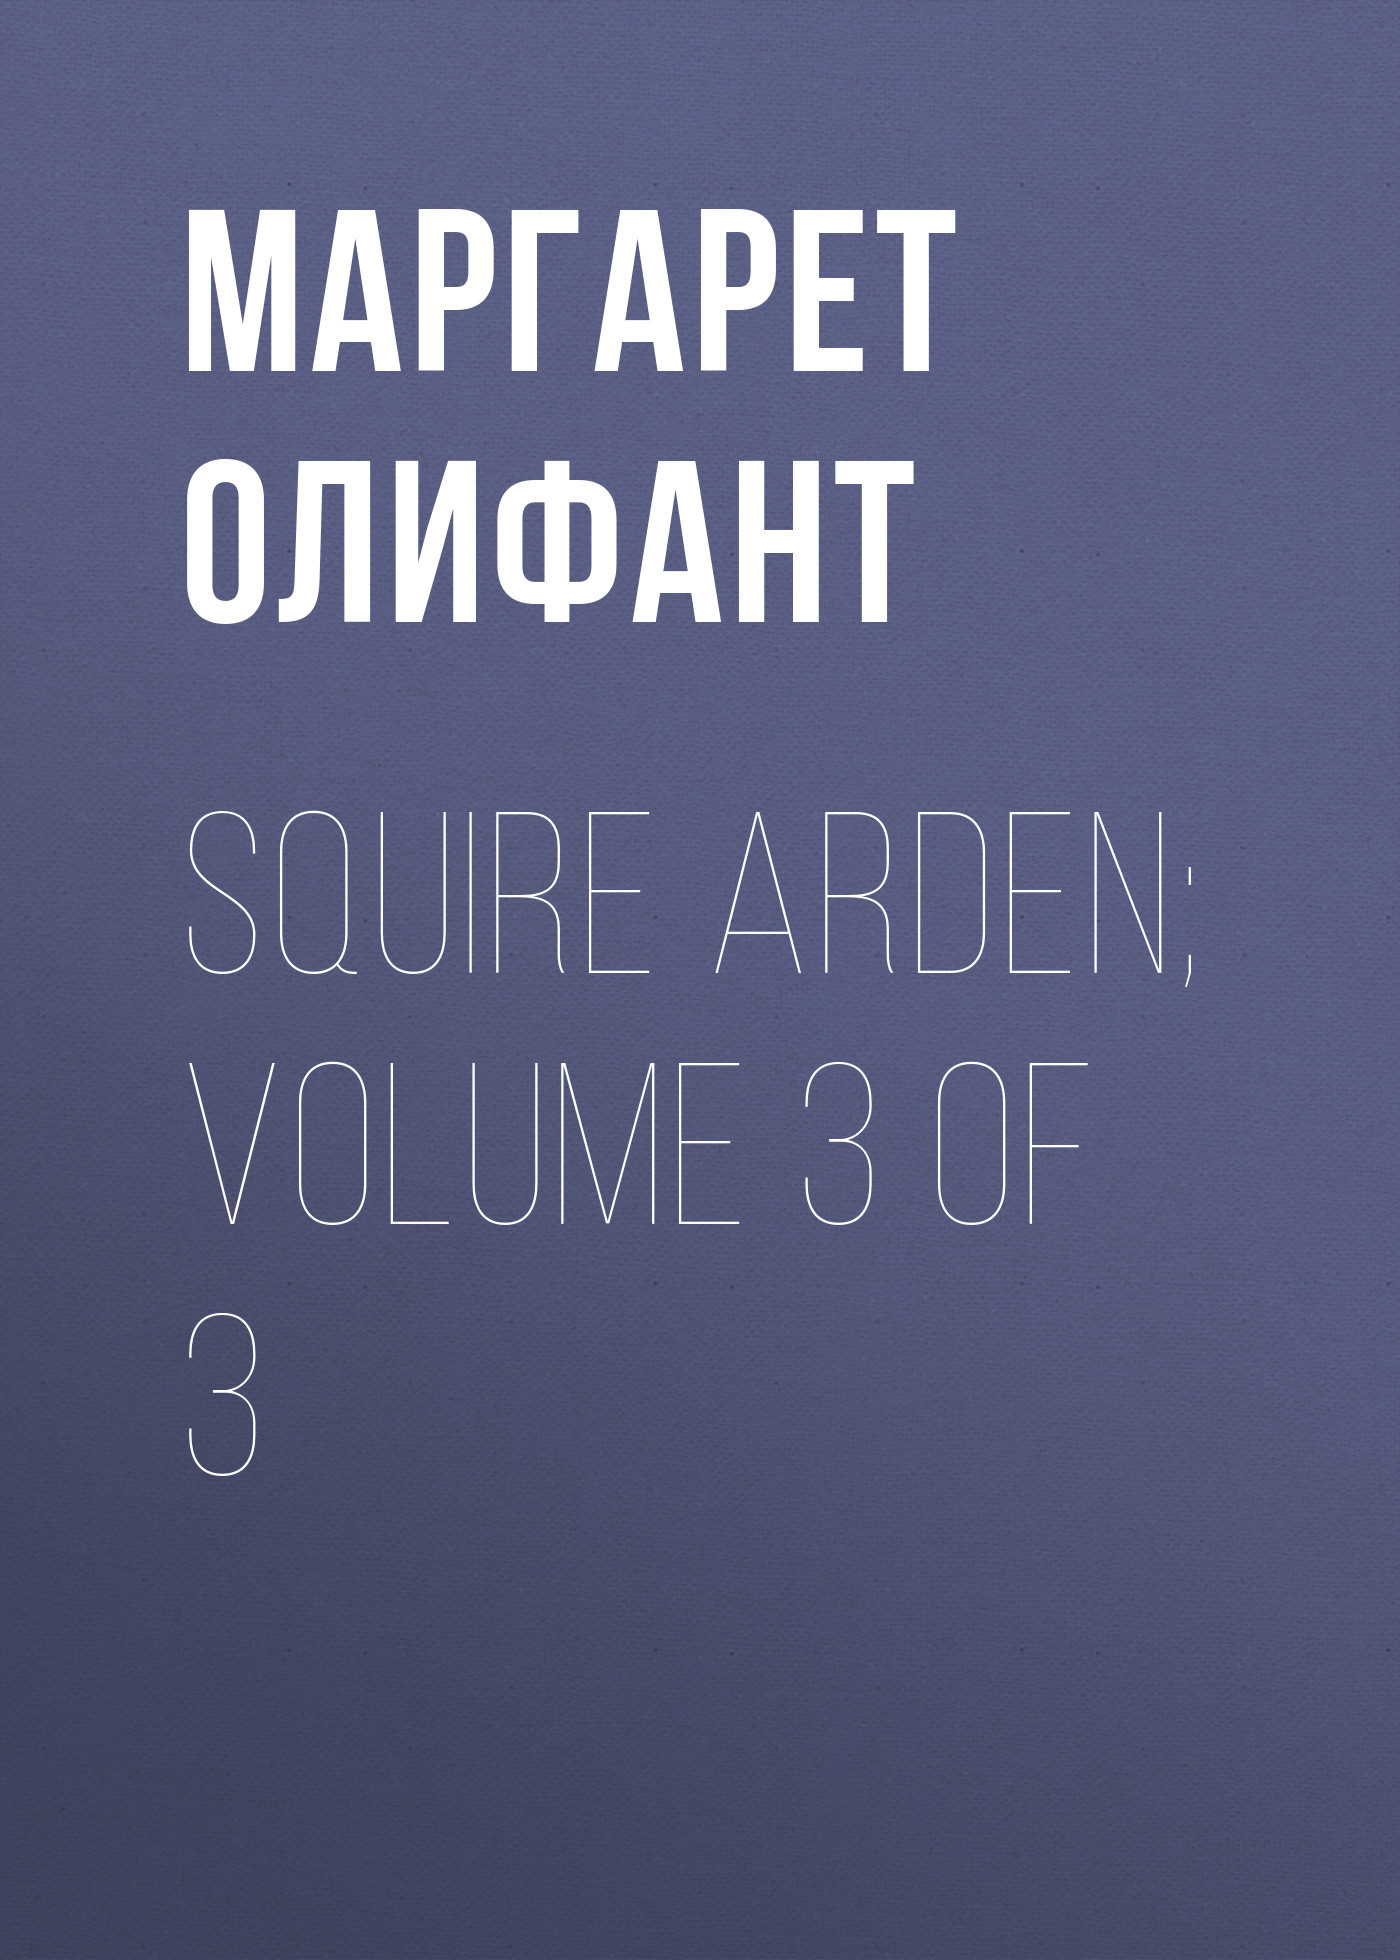 Маргарет Олифант Squire Arden; volume 3 of 3